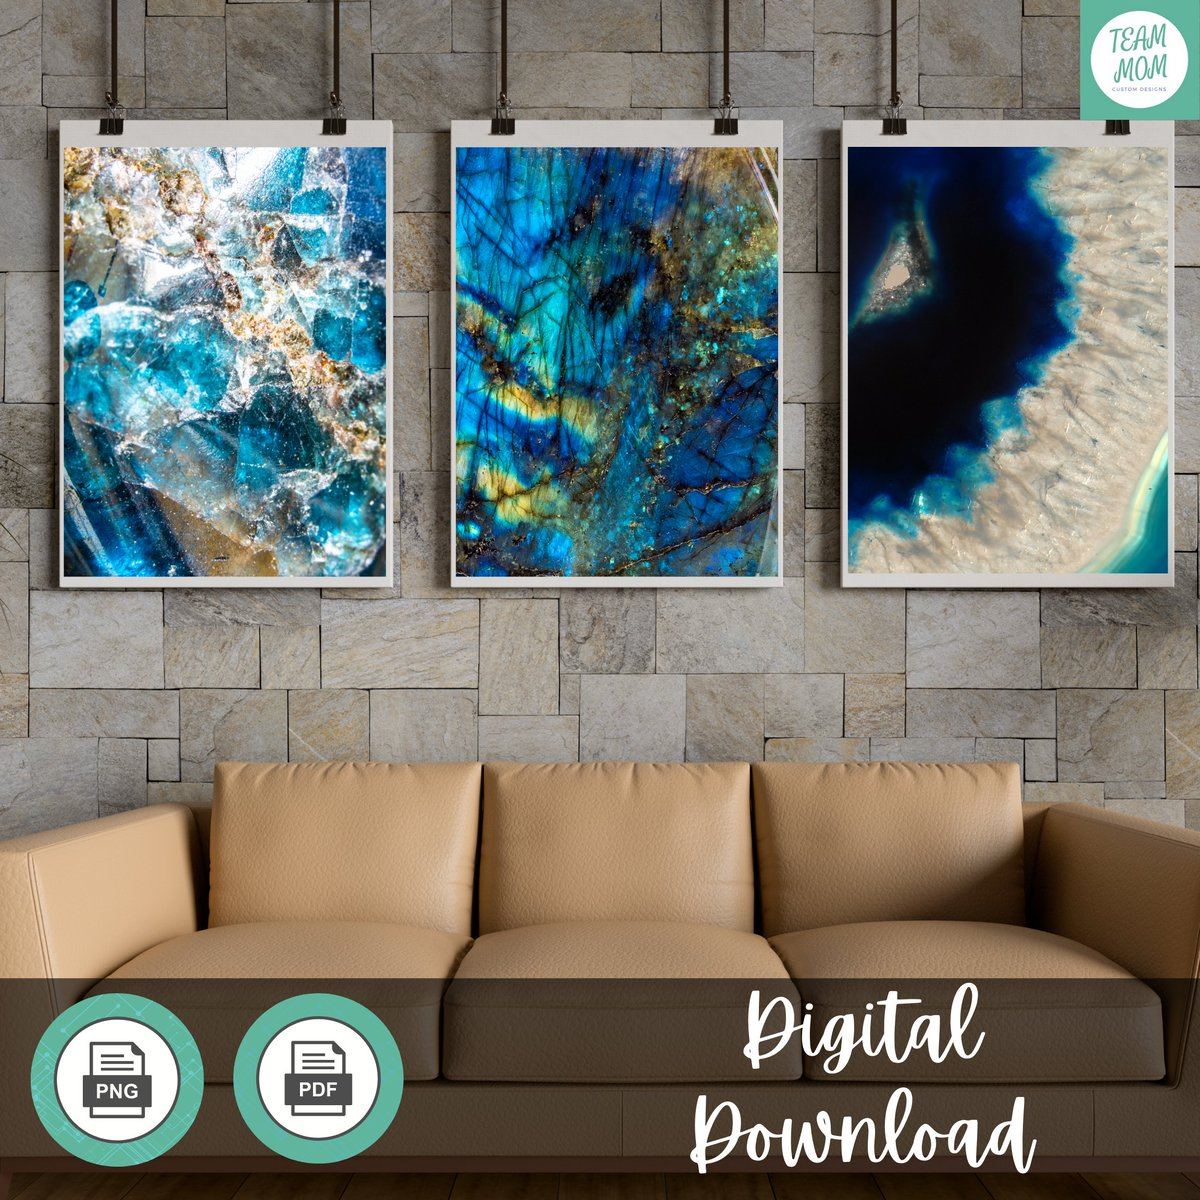 Beautiful art does not have to be expensive. These printables are only $5.20. Download, print and frame!  https://t.co/NLdWQspFhR  #geodeart #printables #unframed #blueagate #bluegeode #blueart #livingroomart #printableart #walldecor #decor #art #download #bluegold #goldart #blue https://t.co/ELt0BAtMT7